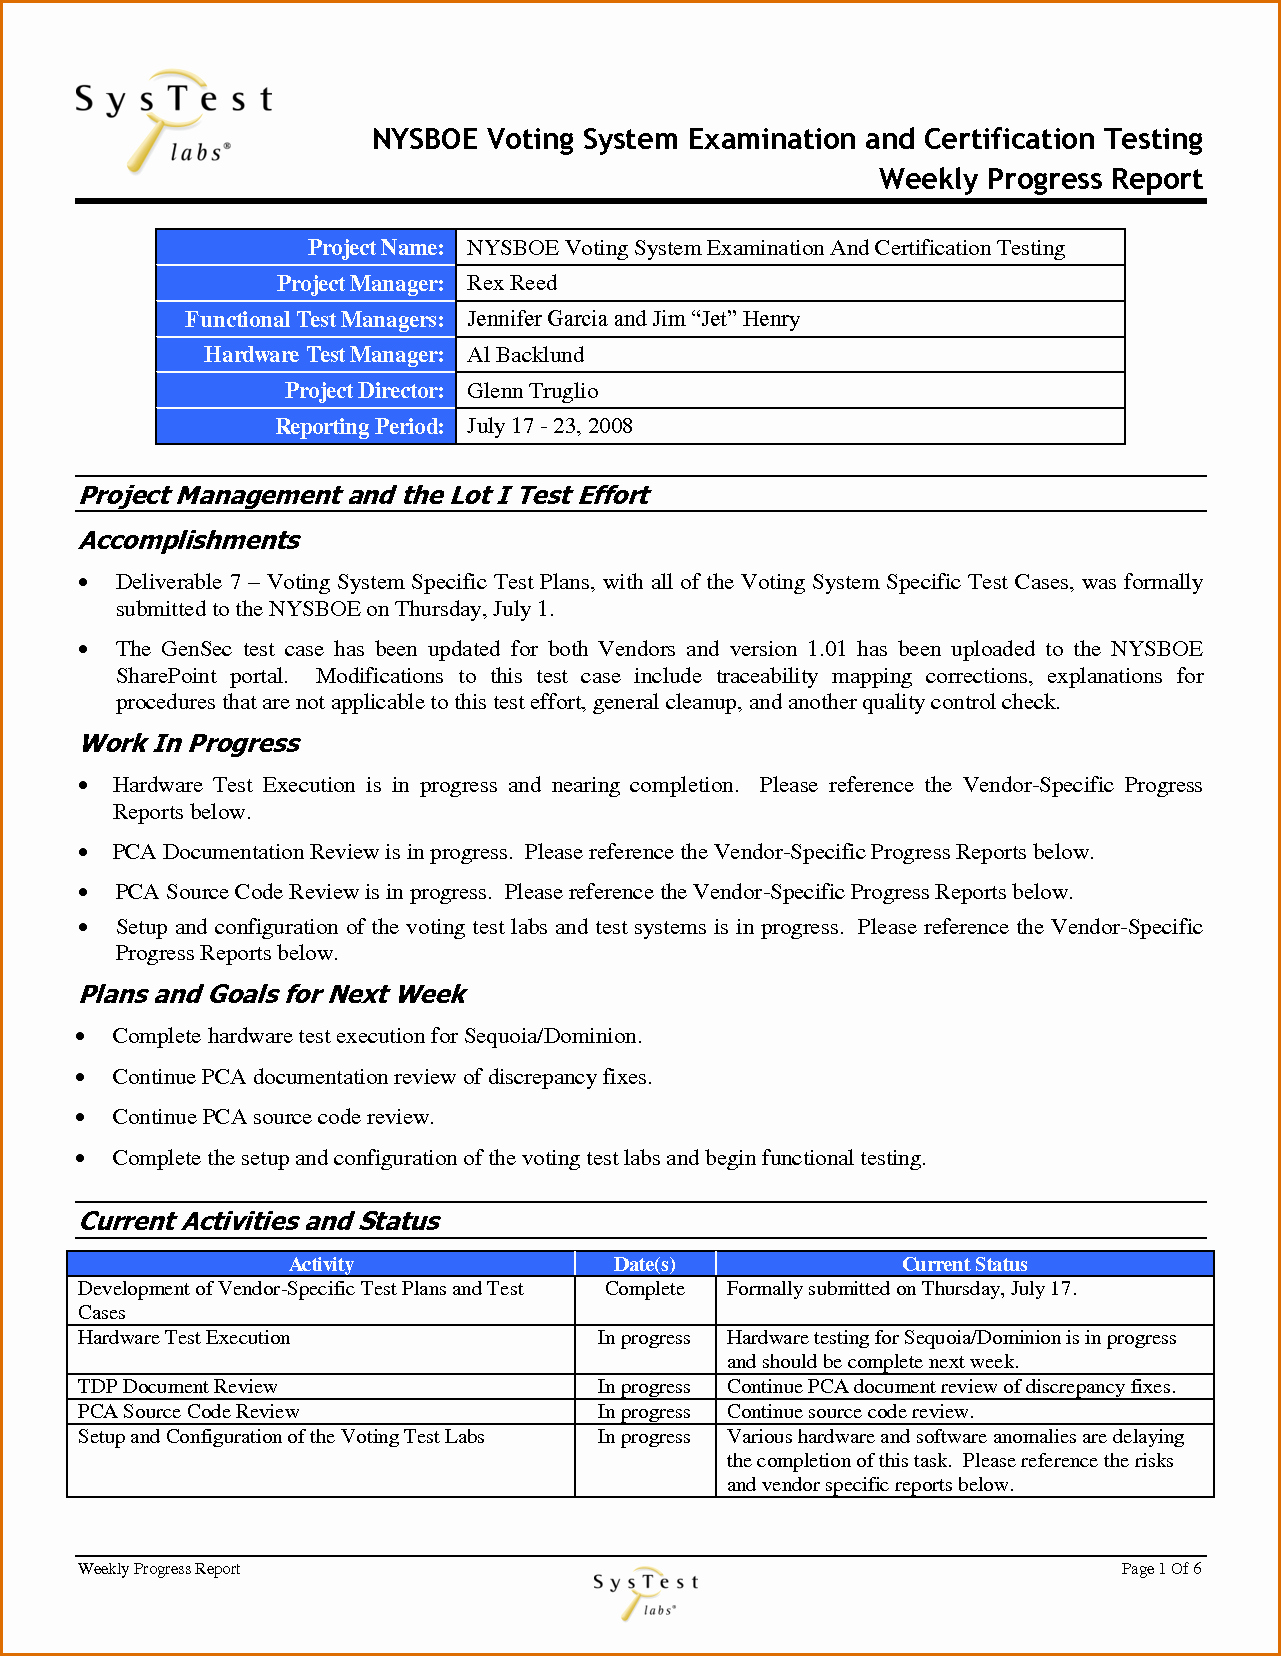 Project Management Progress Report Template Elegant 12 Weekly Progress Report Template